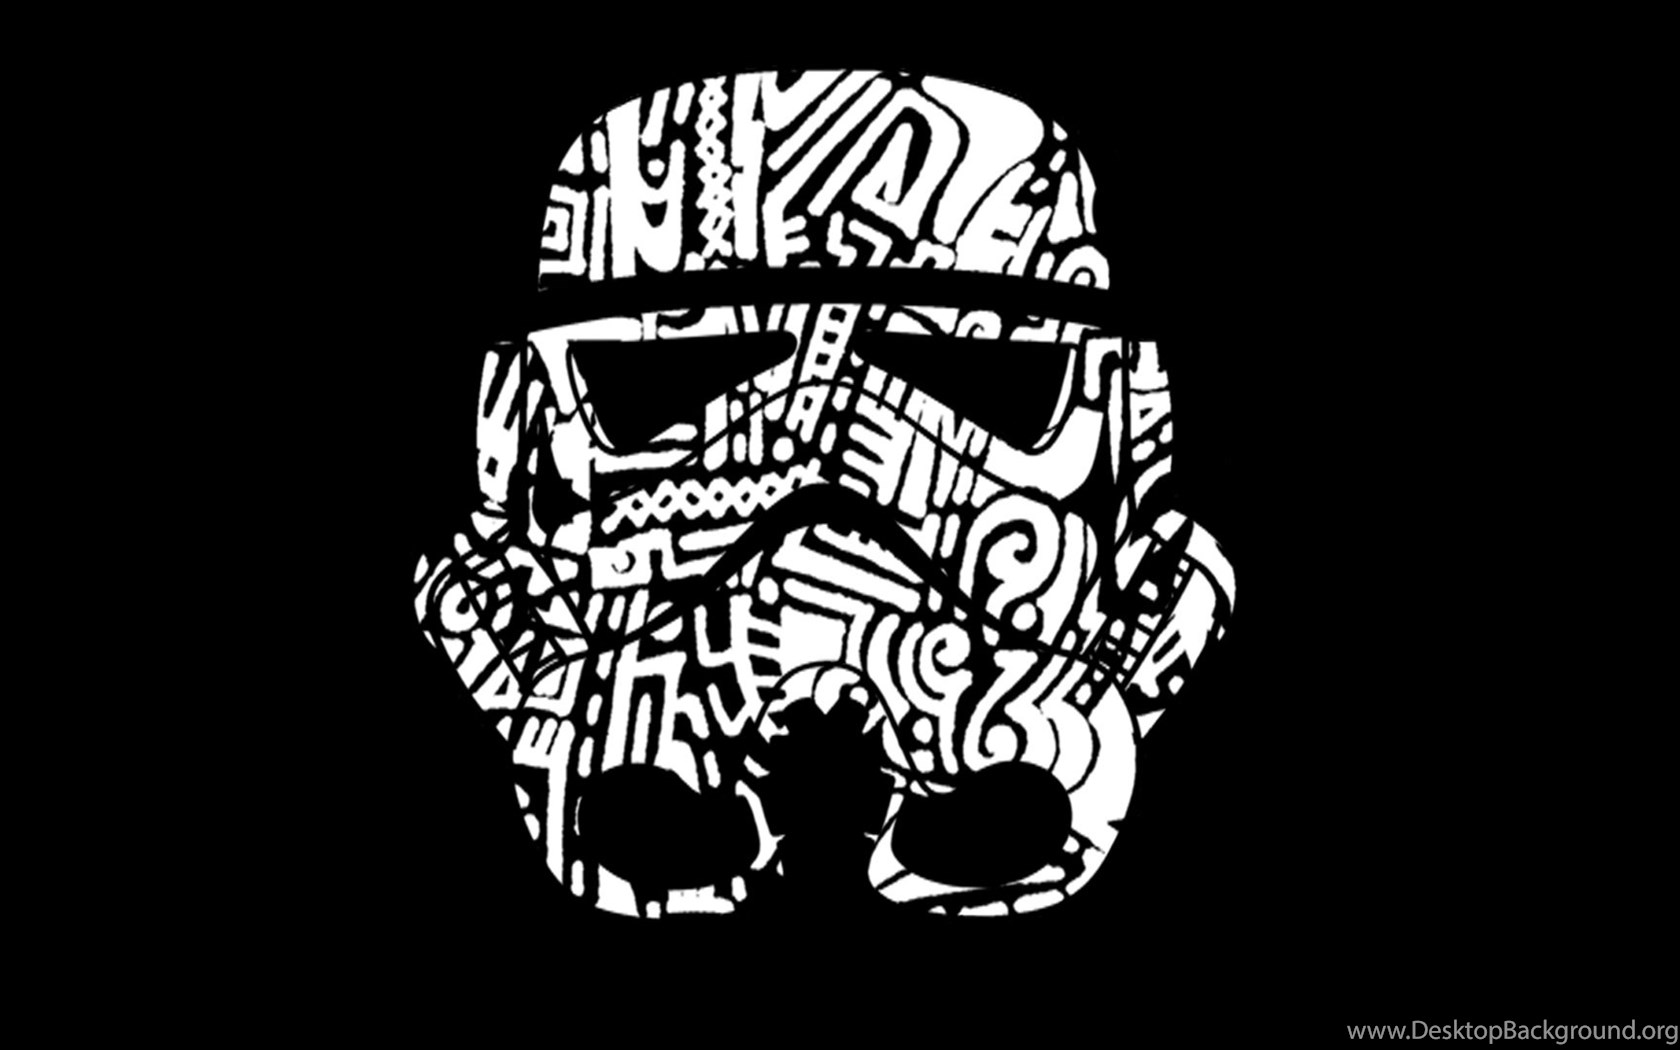 Wallpapers Hd 1080p Black And White Star Wars Desktop Background